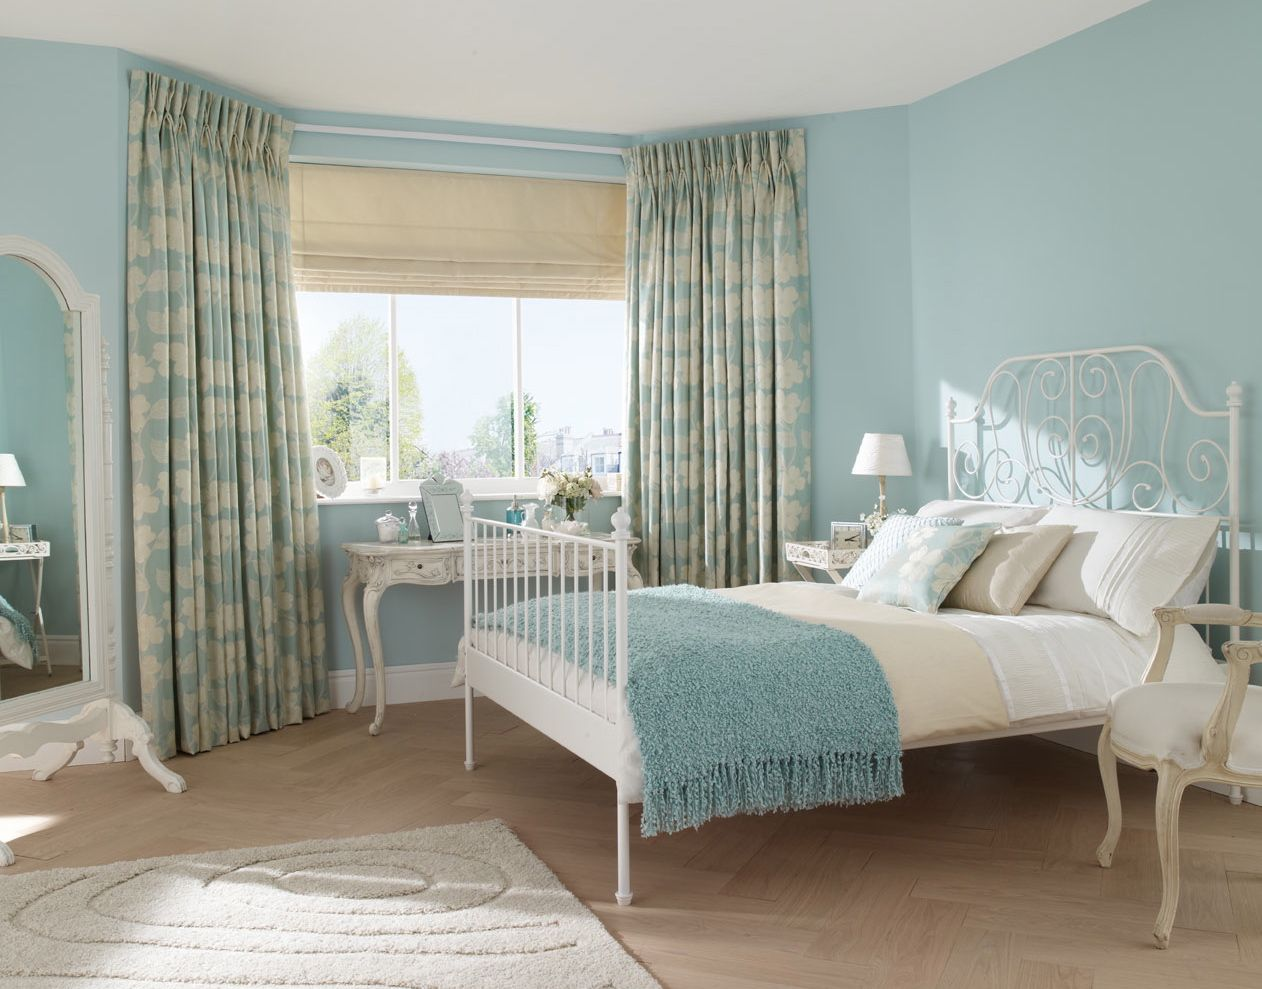 Bedroom Ideas Google Search Bedroom Decor Pinterest Beige Carpet Duck Egg Blue And